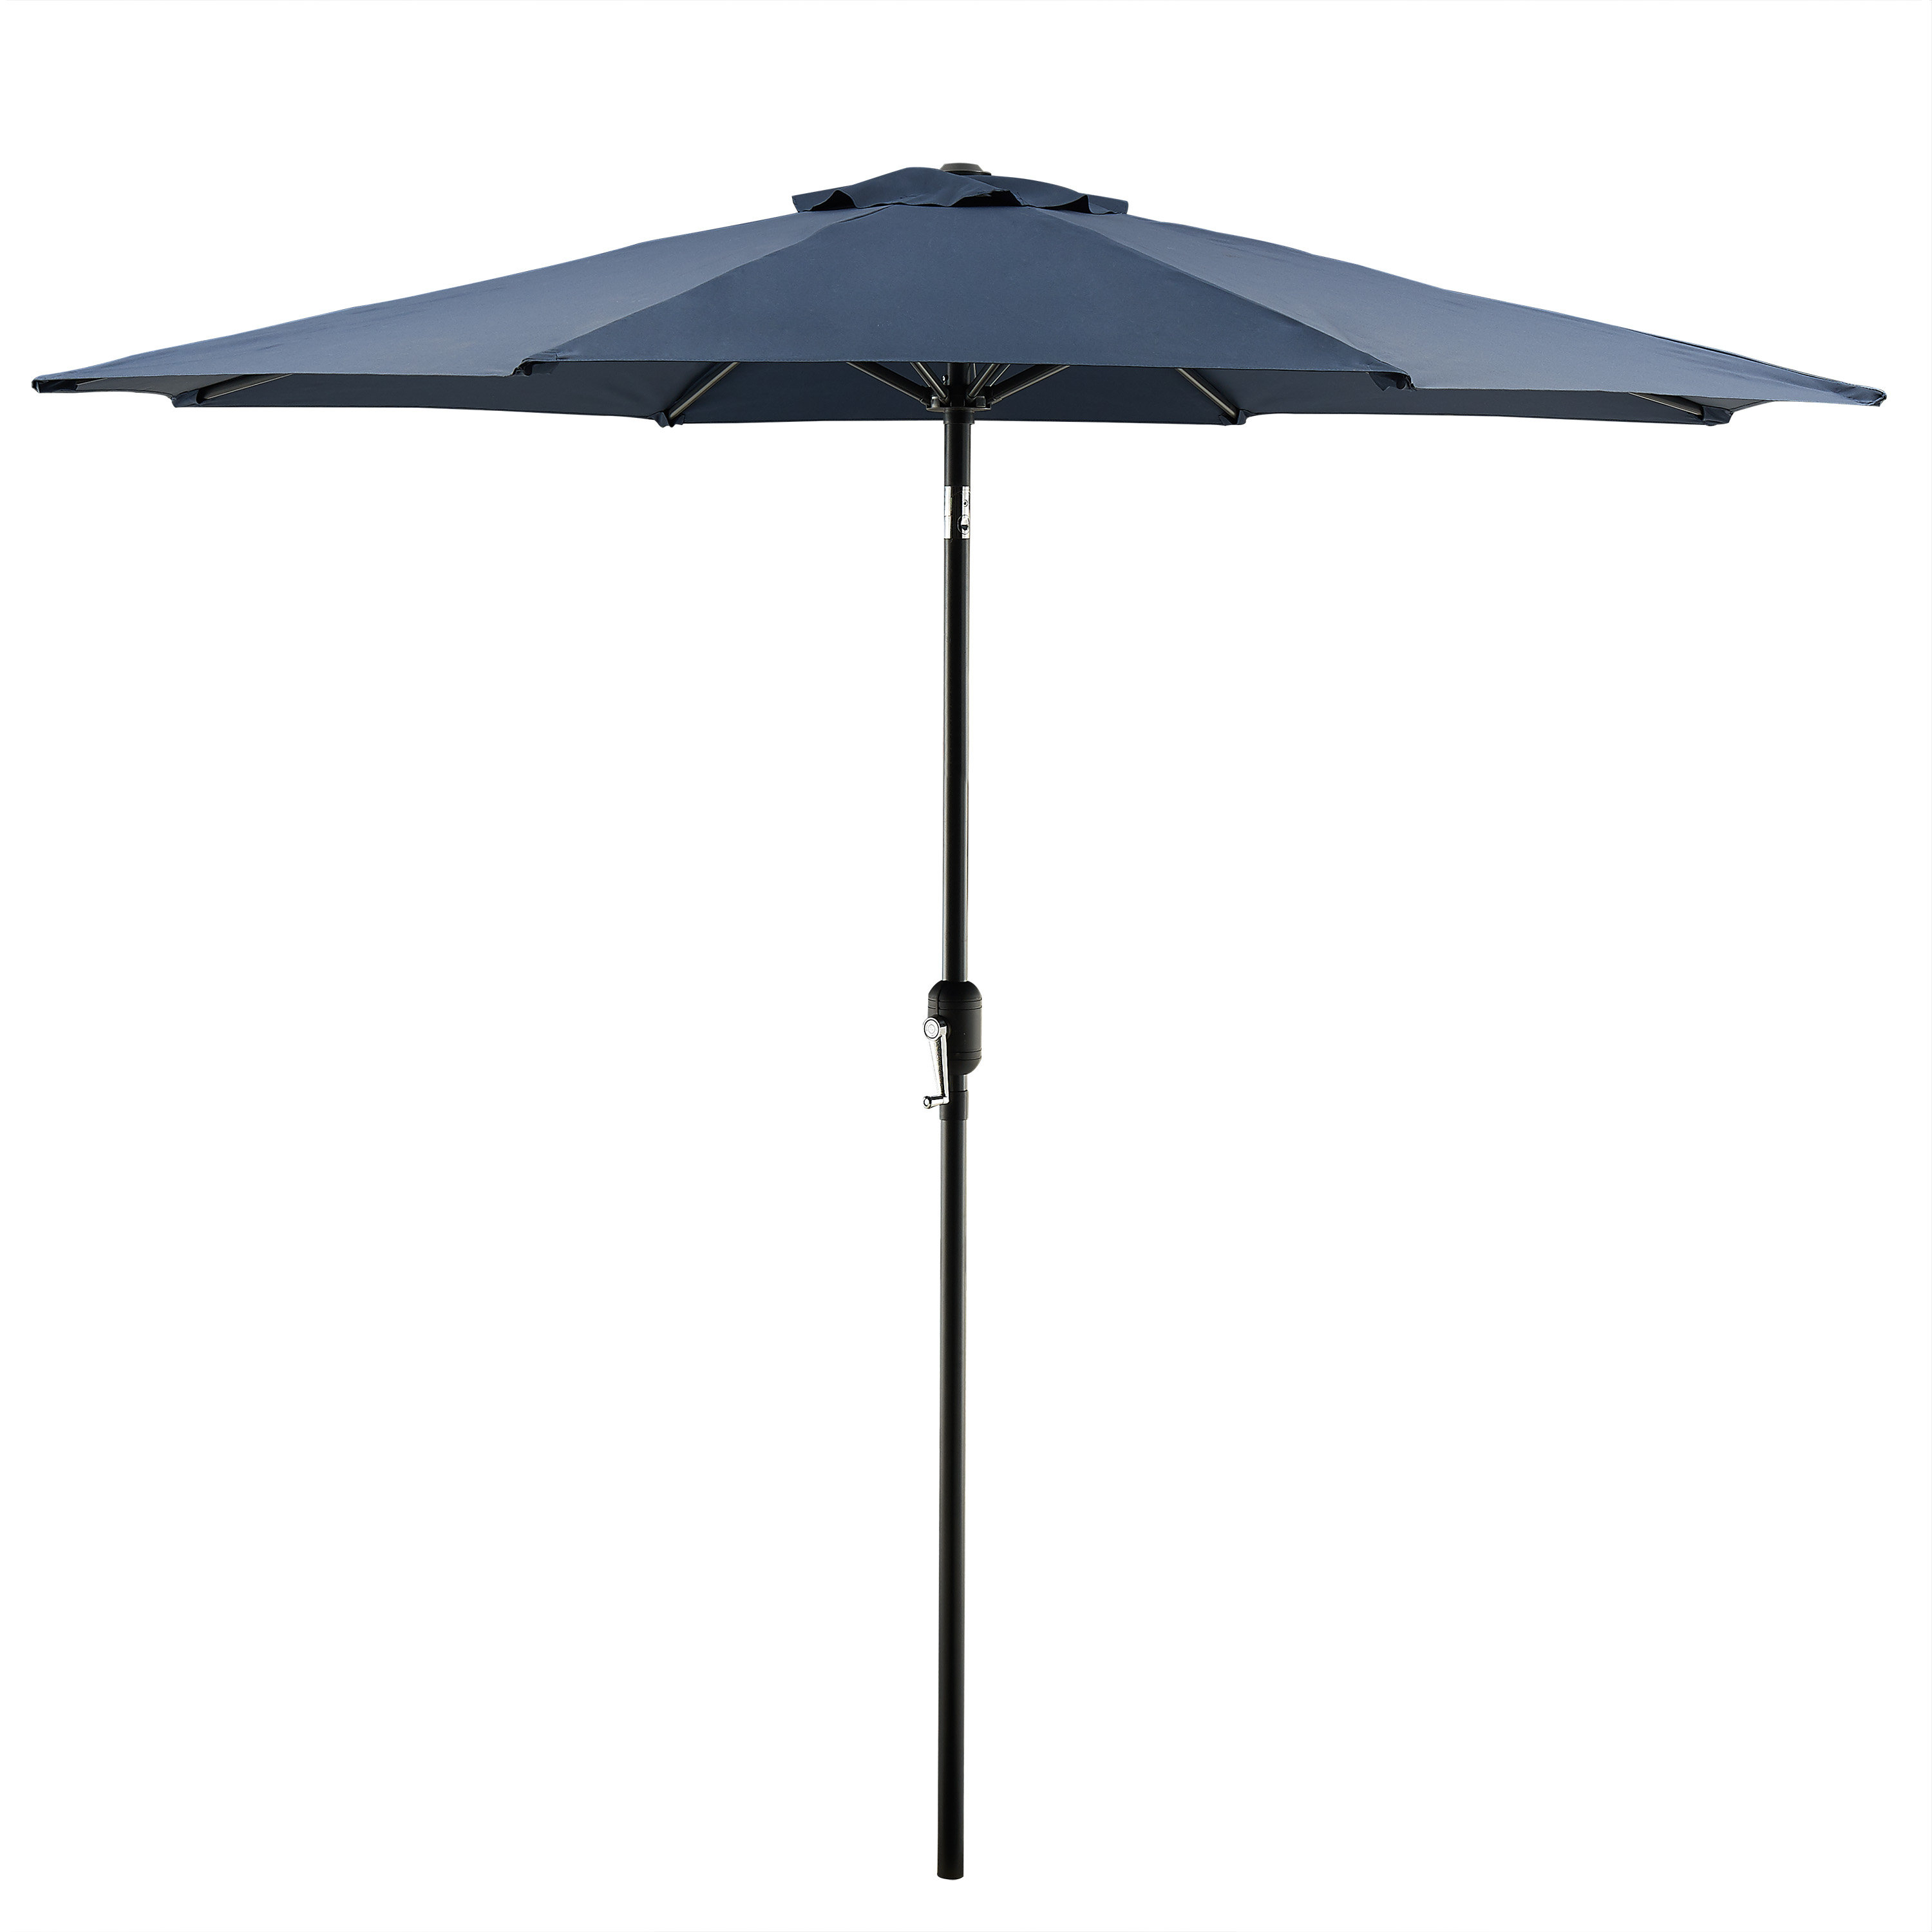 Hapeville 9' Market Umbrella Throughout Best And Newest Hapeville Market Umbrellas (View 5 of 20)